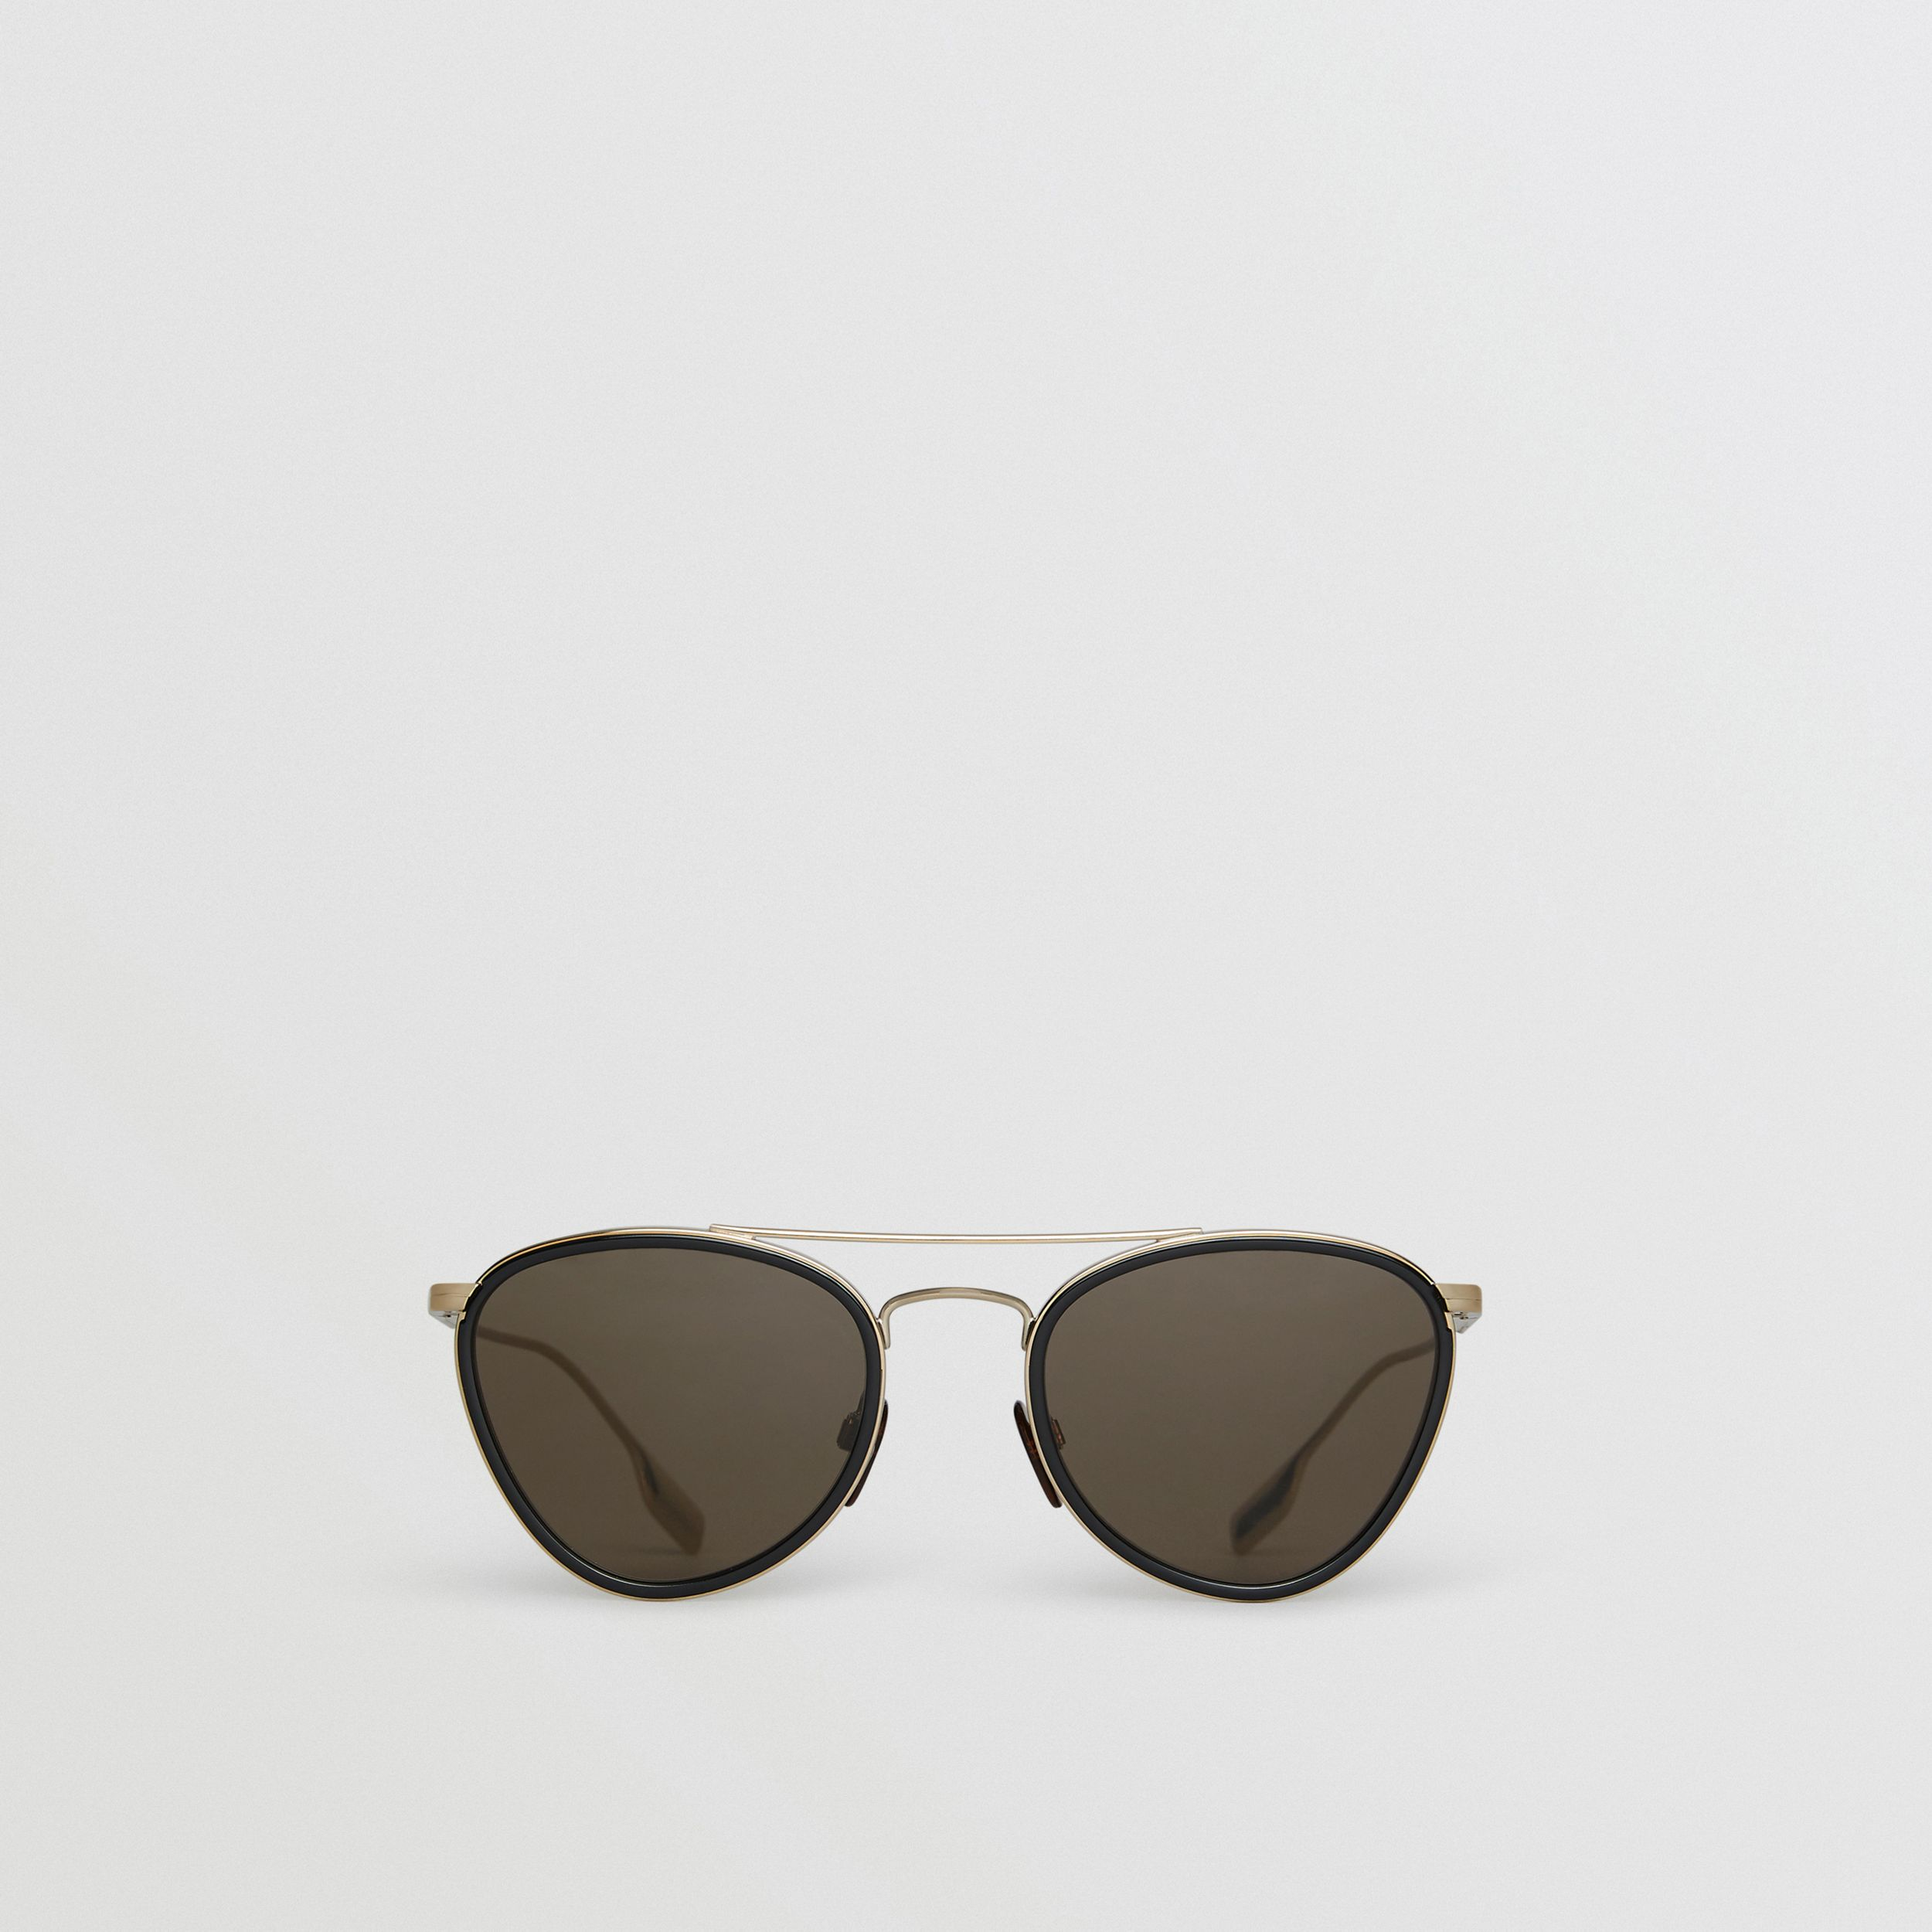 Pilot Sunglasses in Black - Women | Burberry United Kingdom - 1